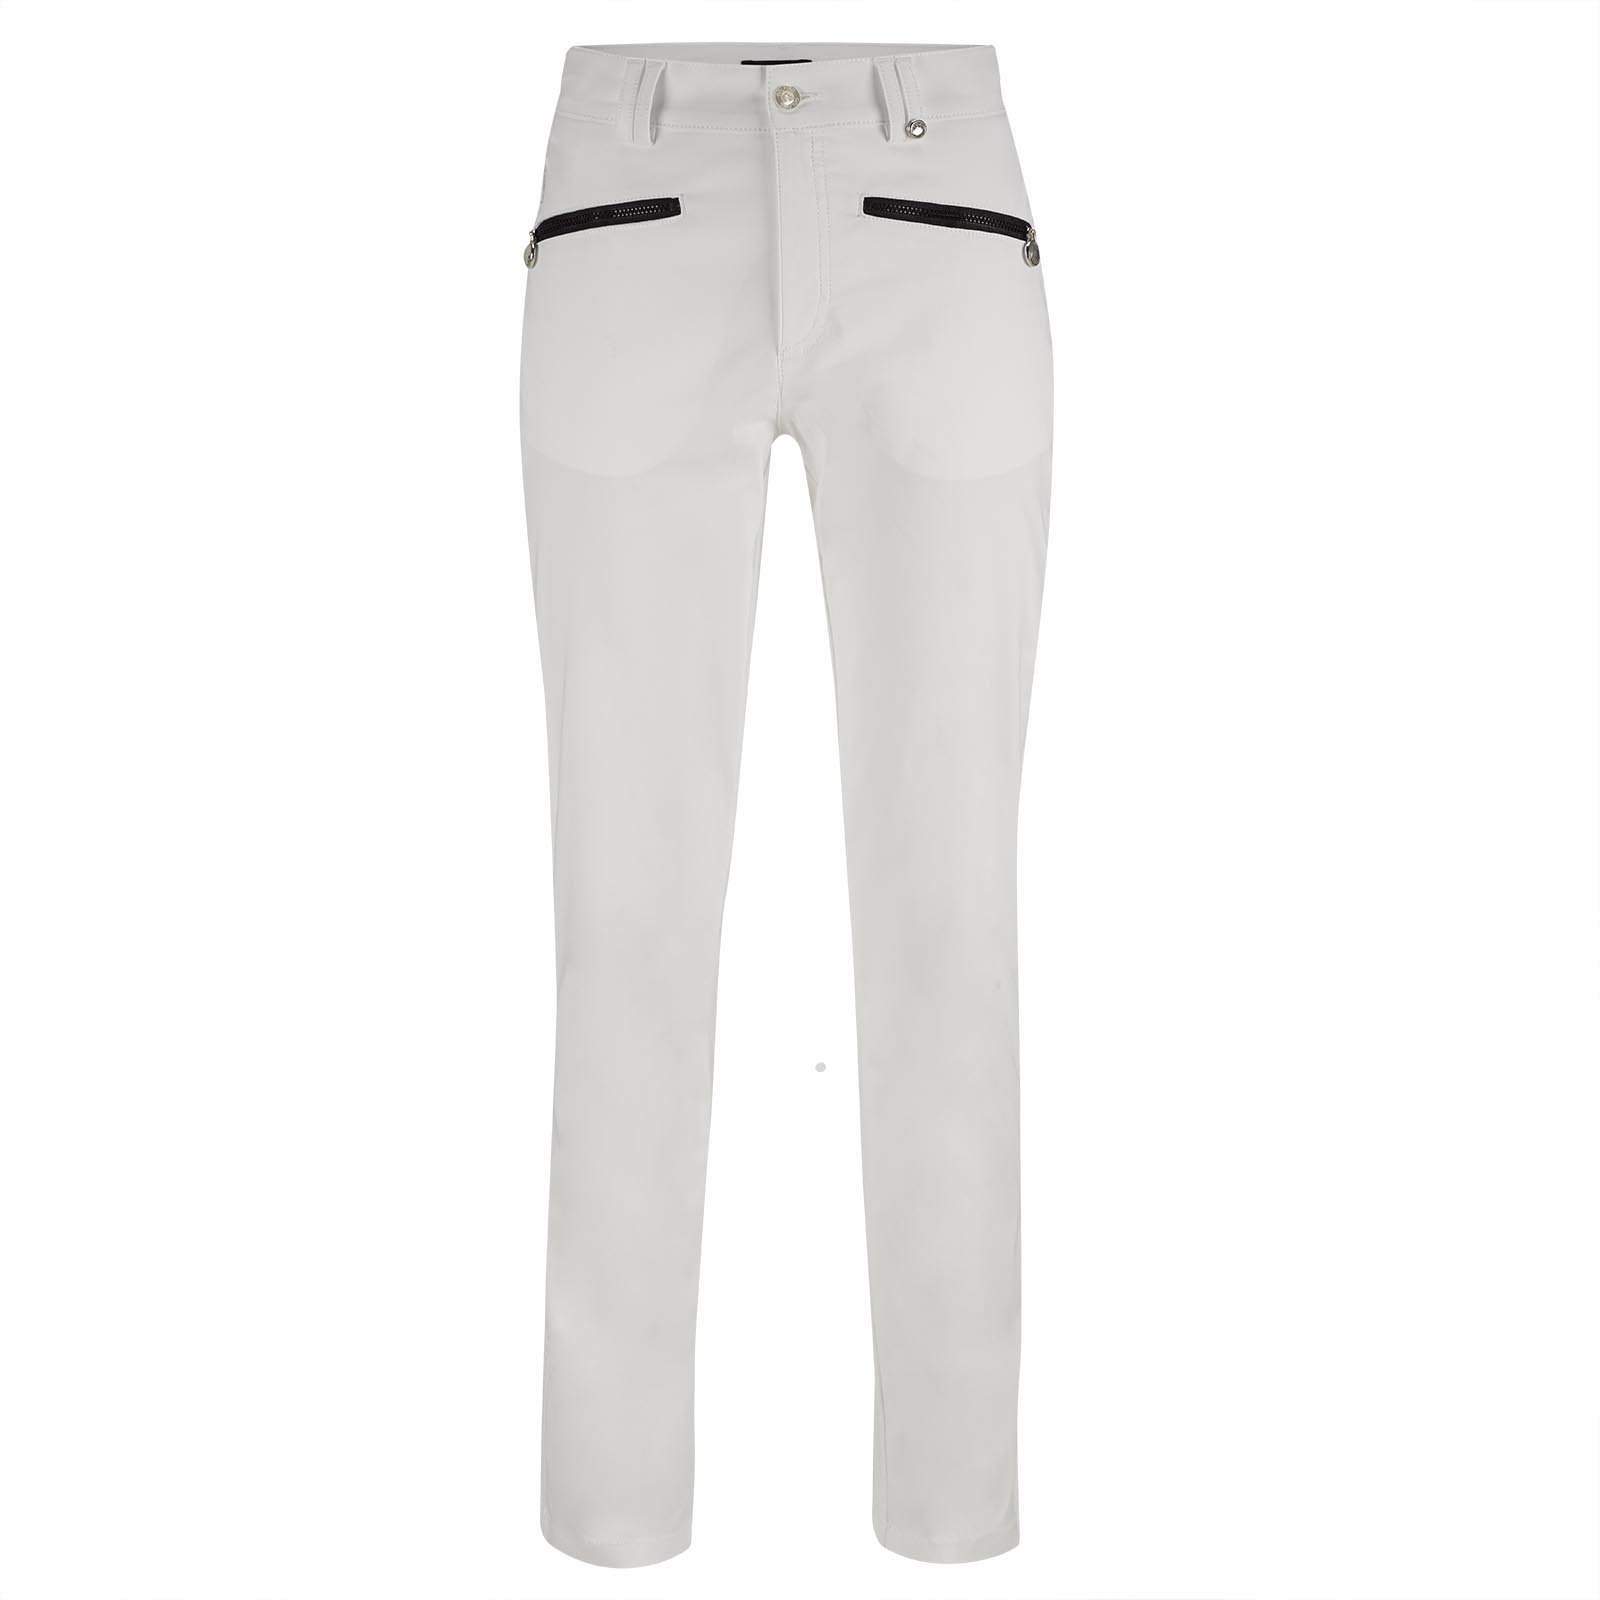 Cotton-Blend 7/8 Damen Golfhose mit UV Protection